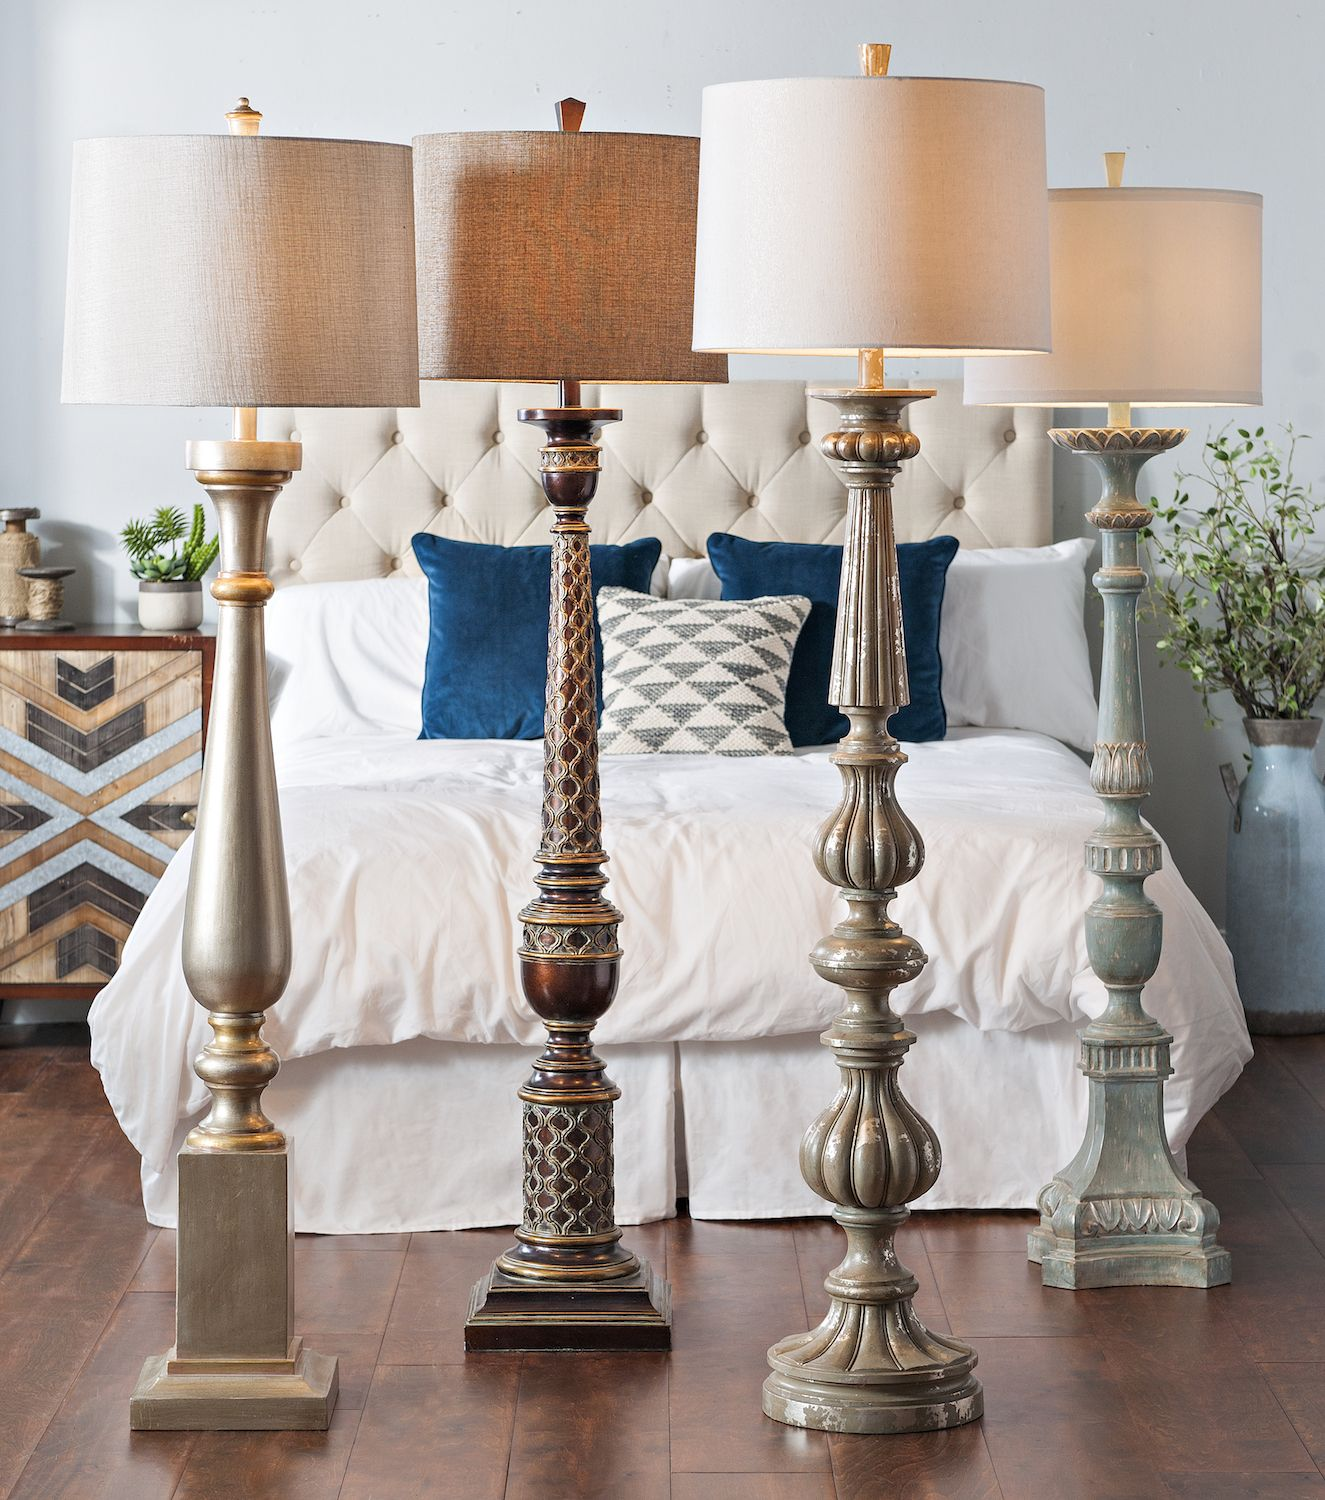 Kirklands Floor Lamps Interesting Shed Some Light On Your Home's Decor With Kirkland's Stylish Inspiration